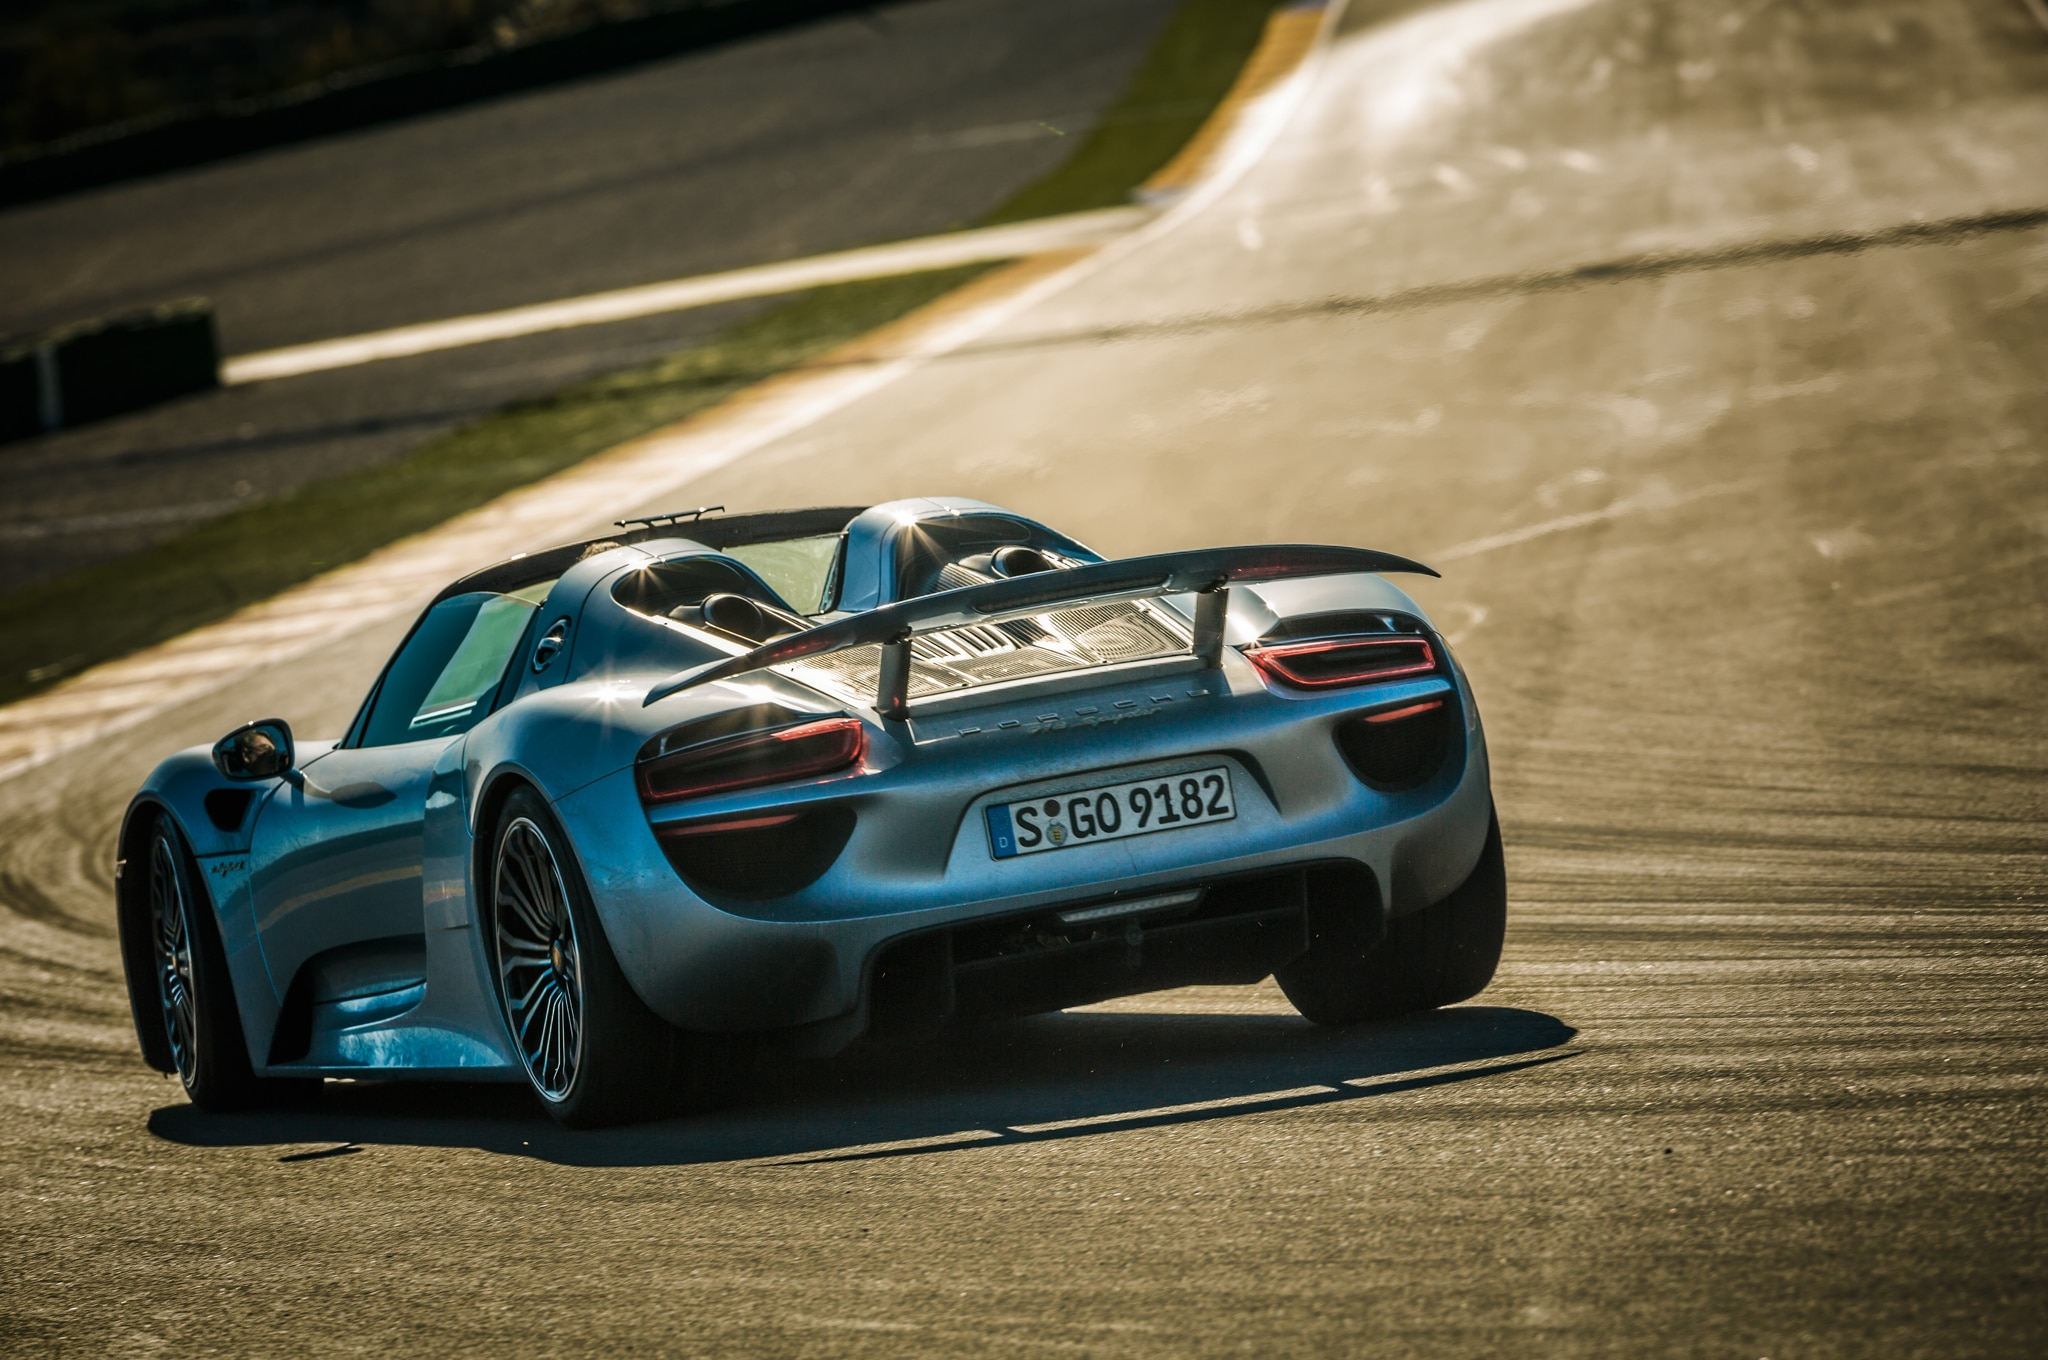 2014-Porsche-918-Spyder-in-Germany-rear-end-in-motion-02 Cozy Porsche 918 Spyder Concept Price Real Racing 3 Cars Trend